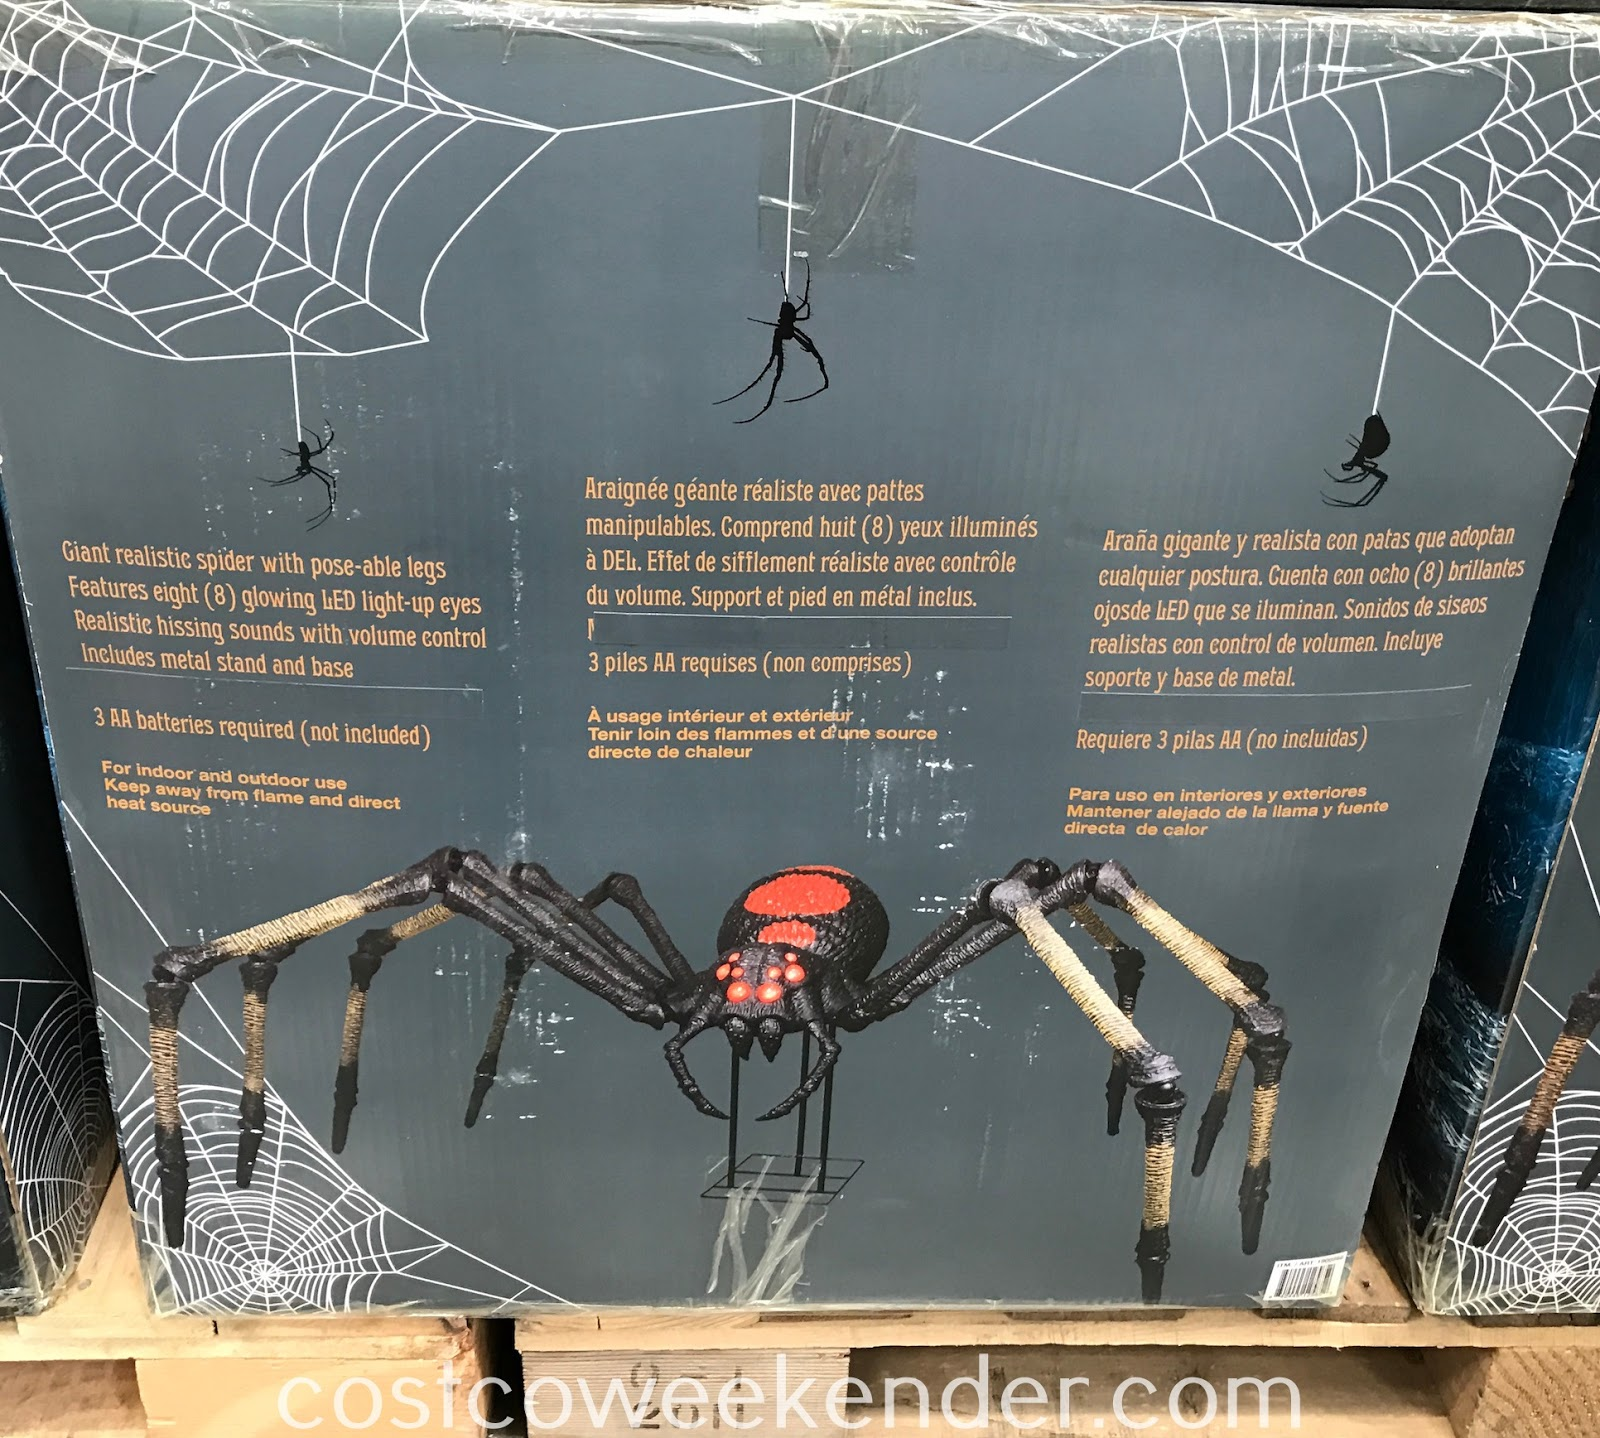 Decorate your home this Halloween with the Giant Mutant Spider